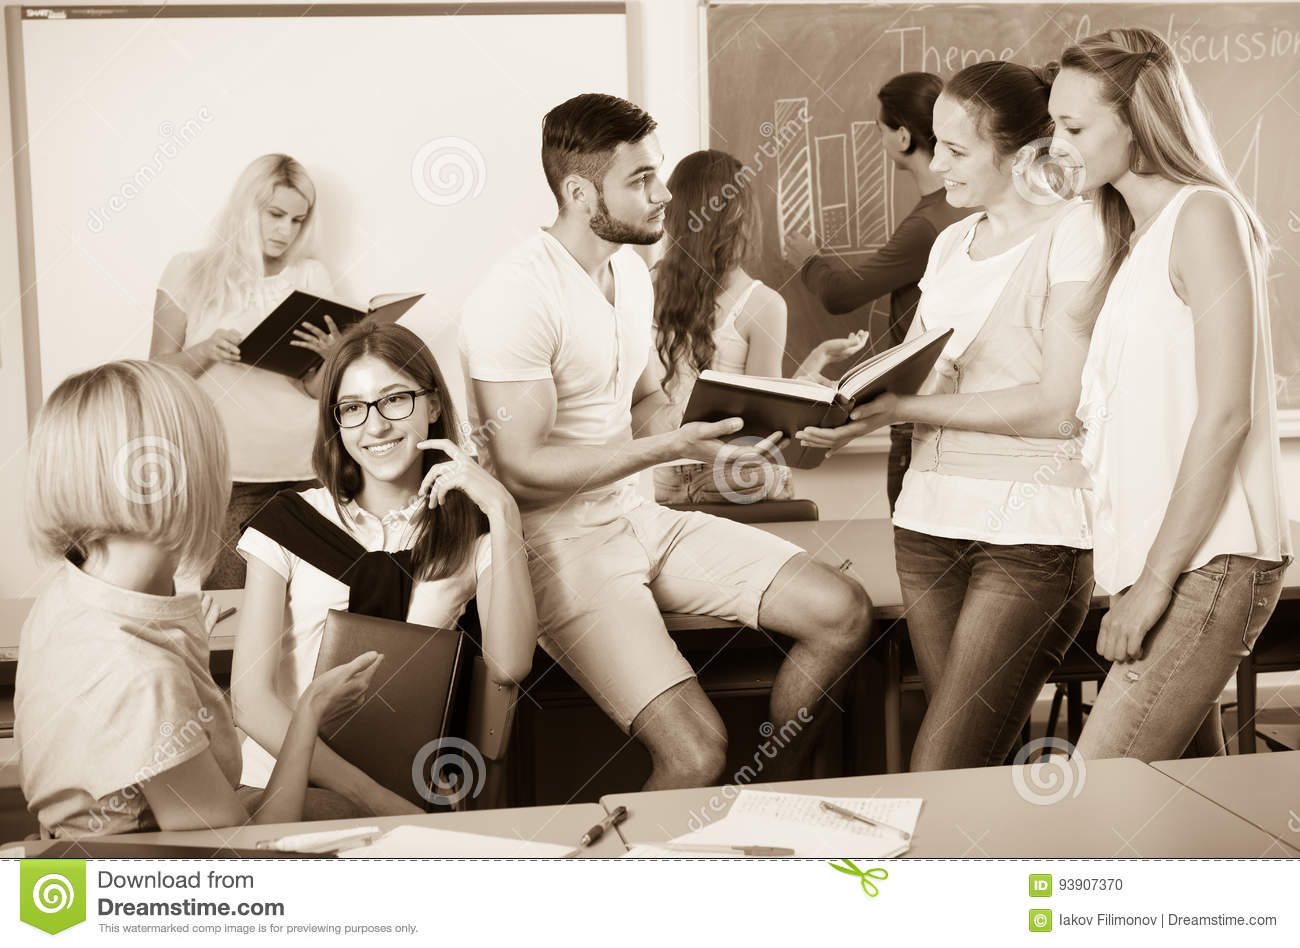 Students chatting while sitting in the room